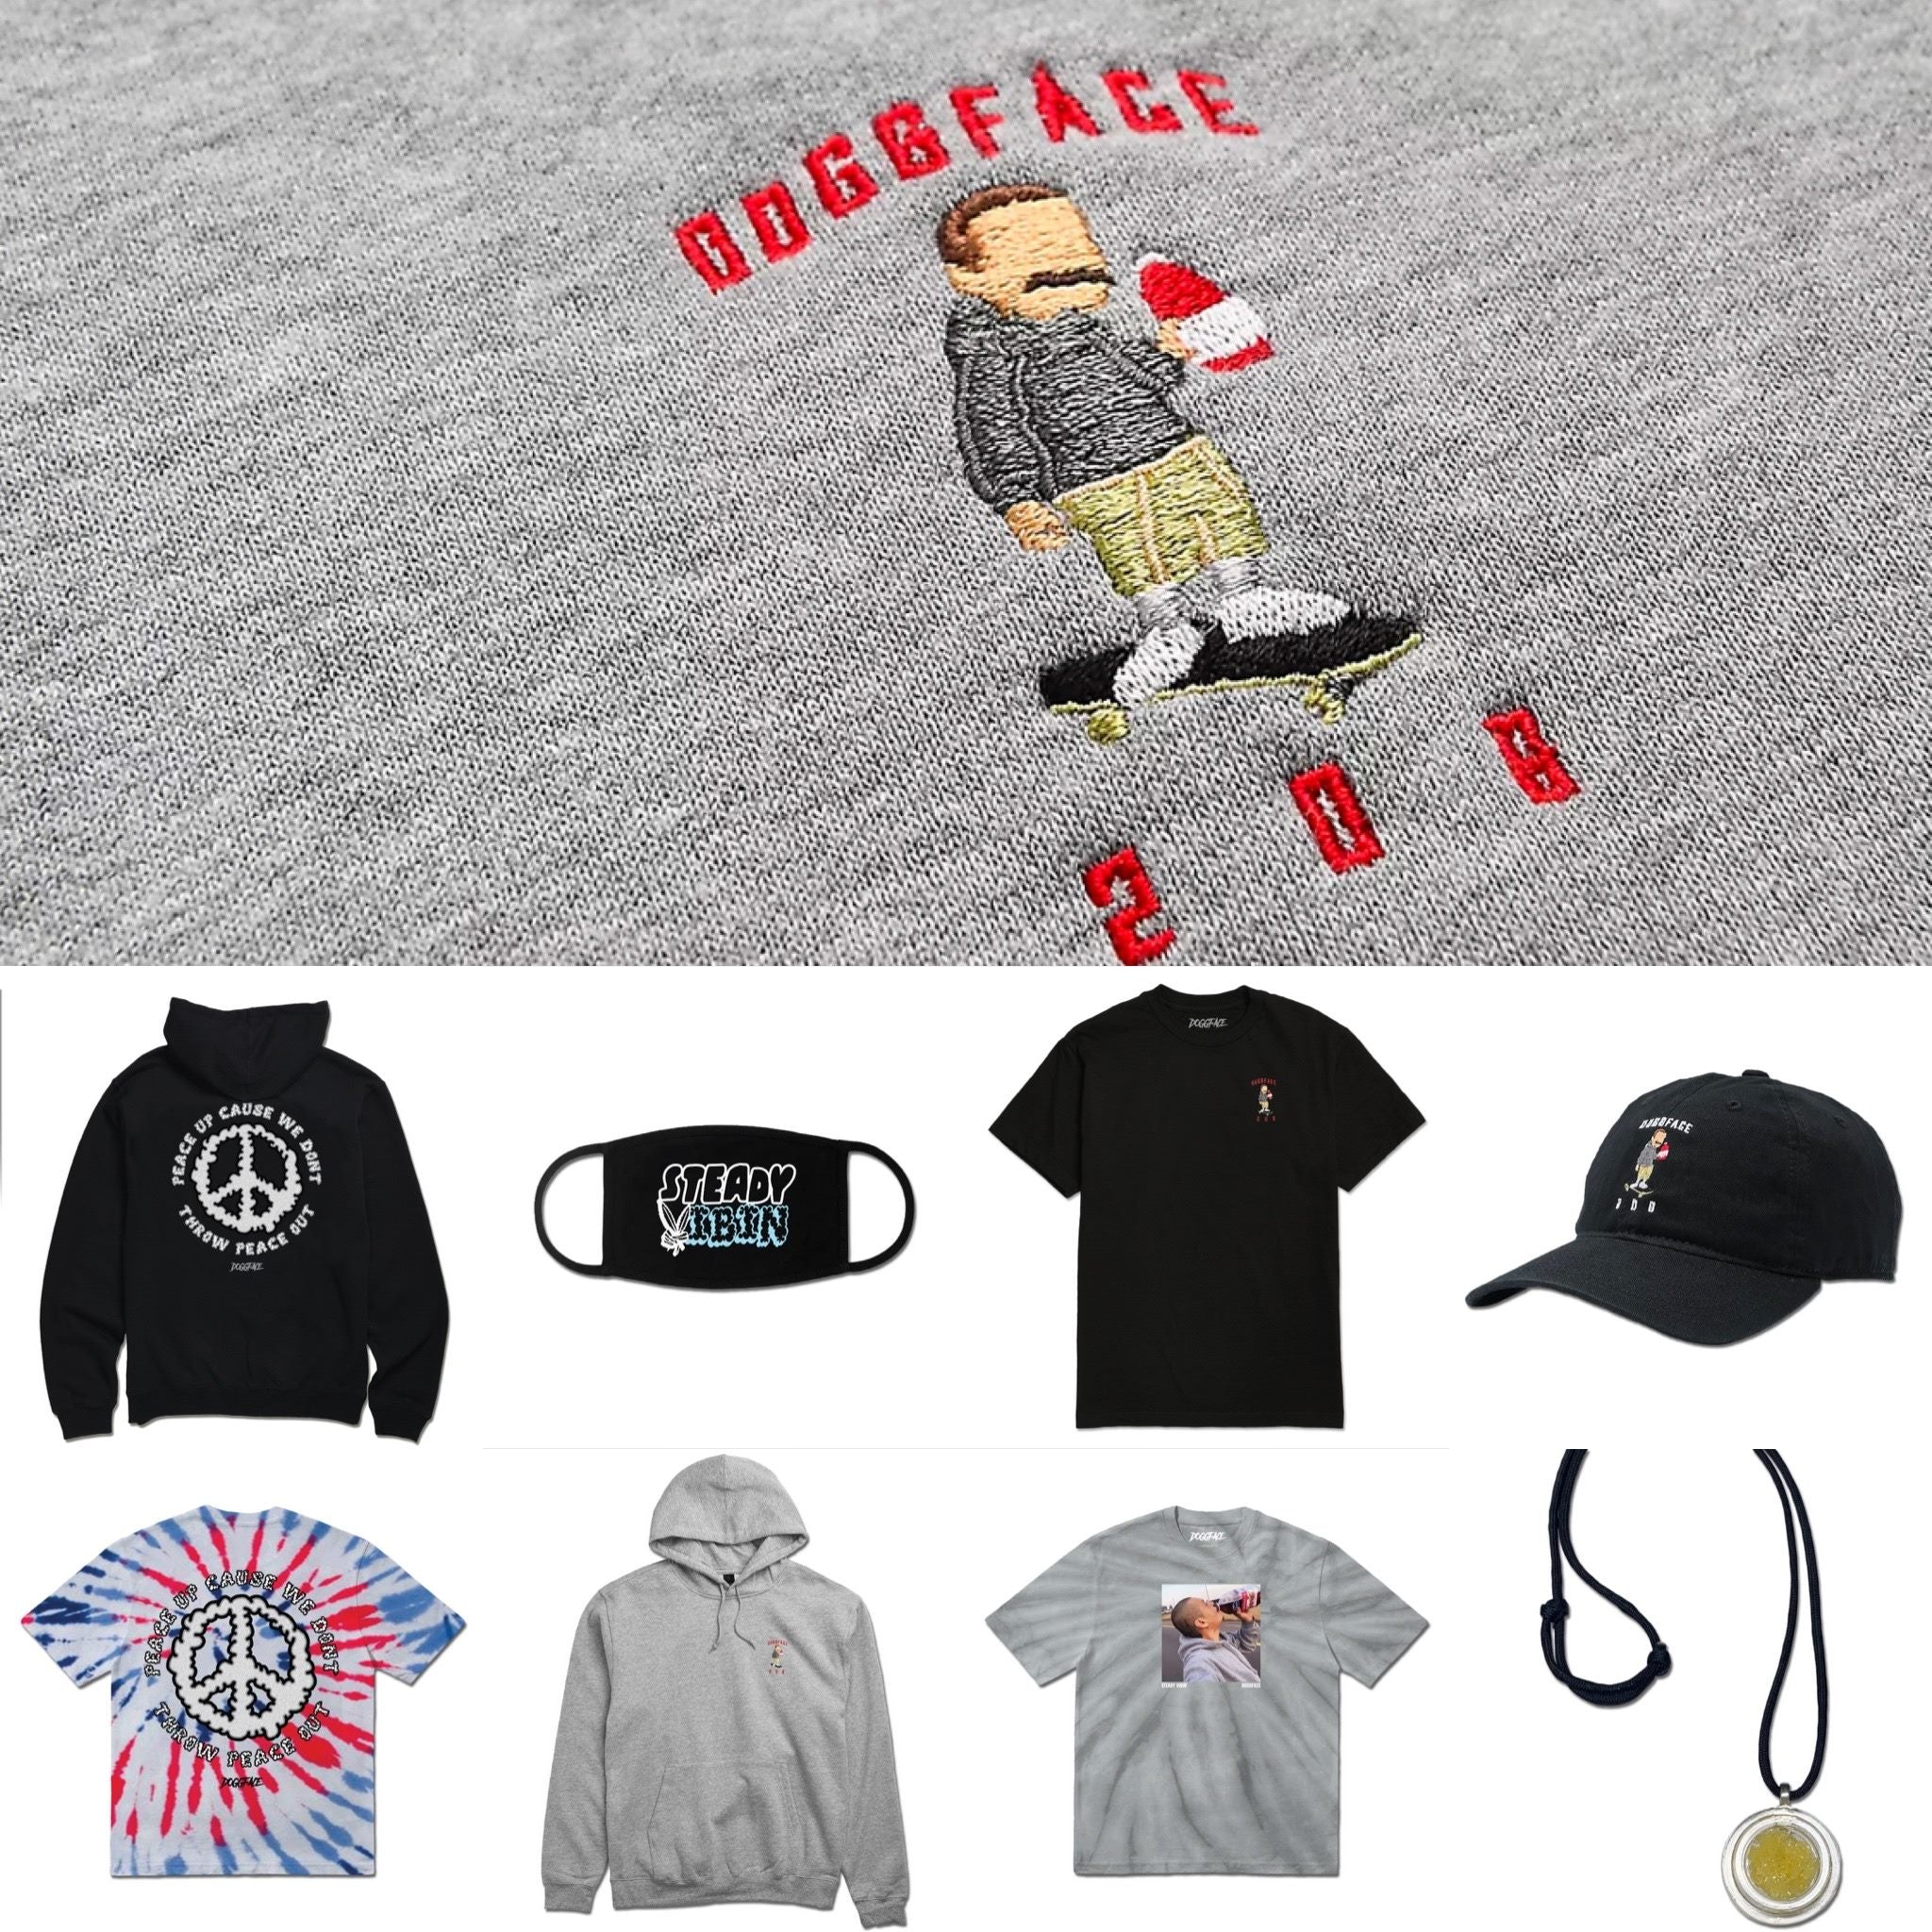 Doggface Drops New Merch